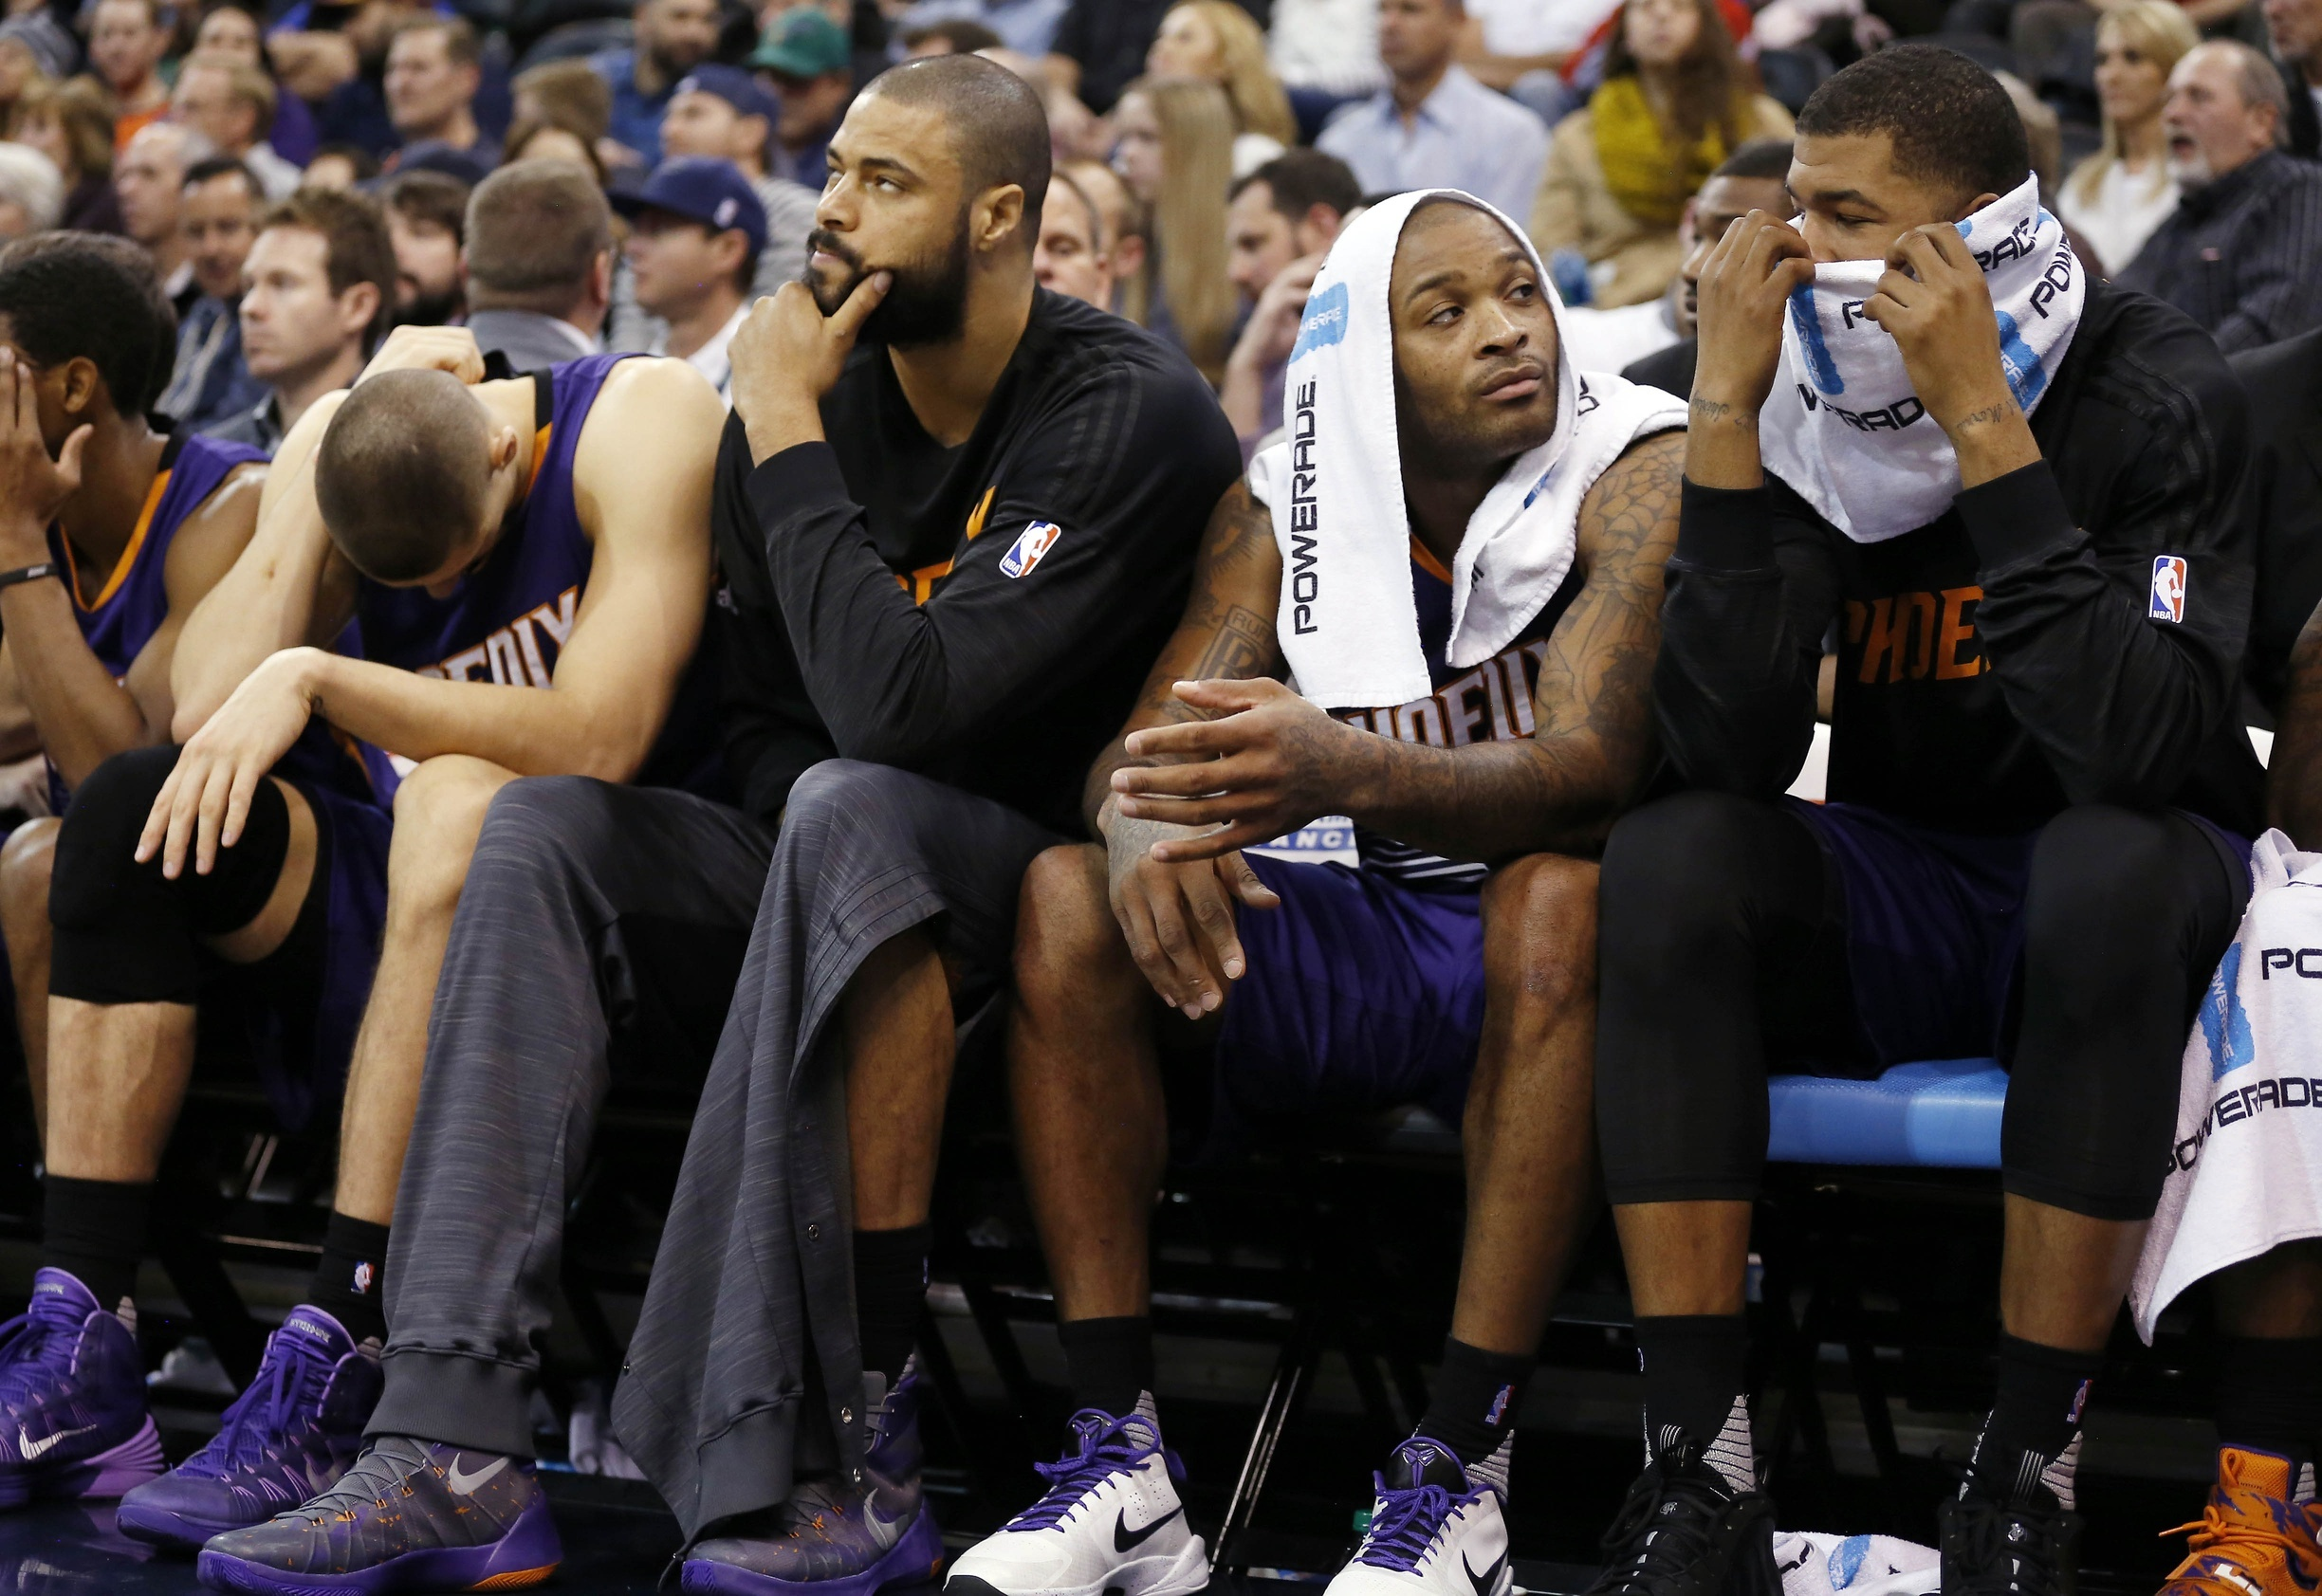 05 Phoenix Suns Roster The Phoenix Suns Problem With Millennials Isnt The